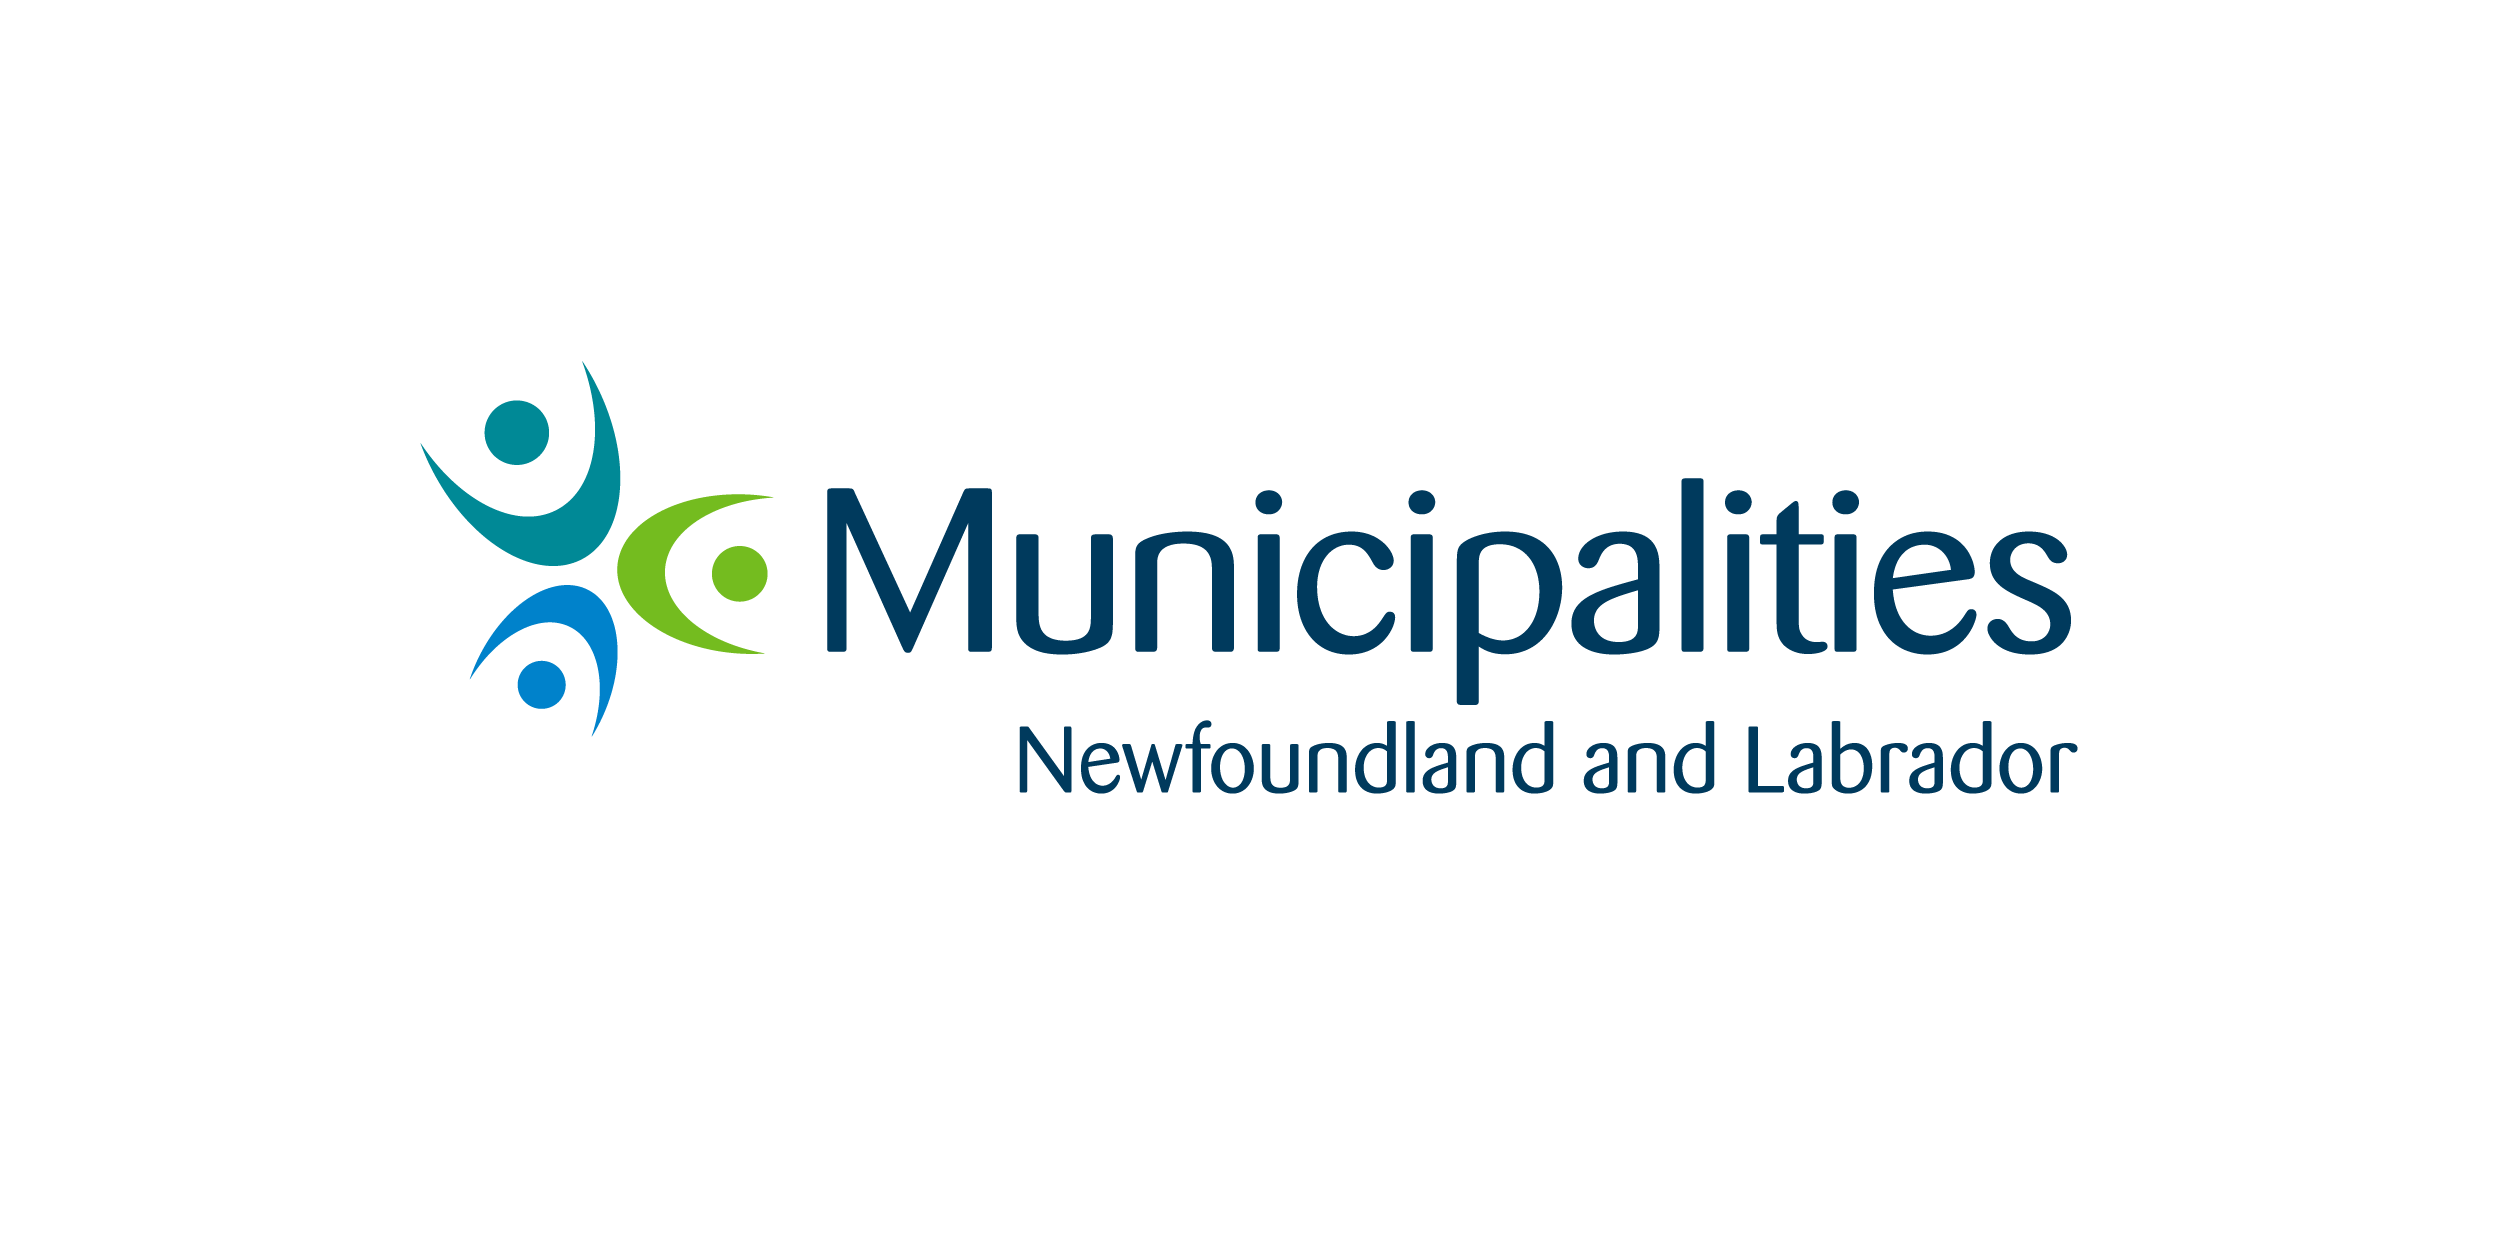 Municipalities Newfoundland and Labrador